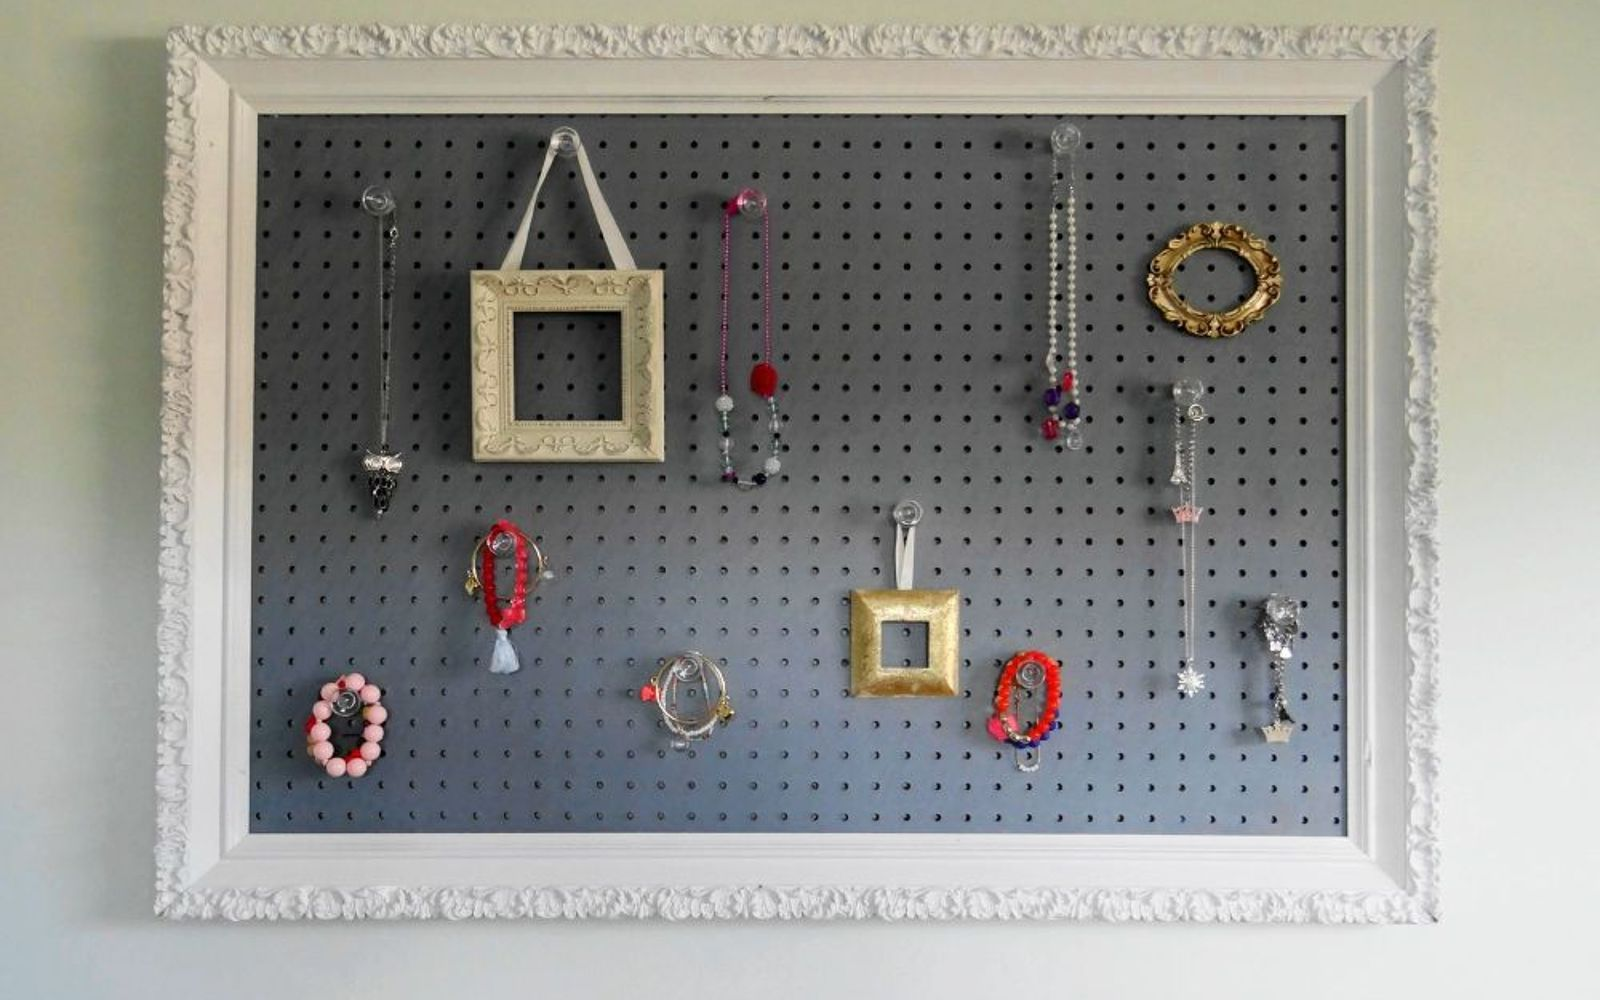 s 15 ways to organize every messy nook with pegboard, organizing, woodworking projects, Frame a board on the wall to hold jewelry